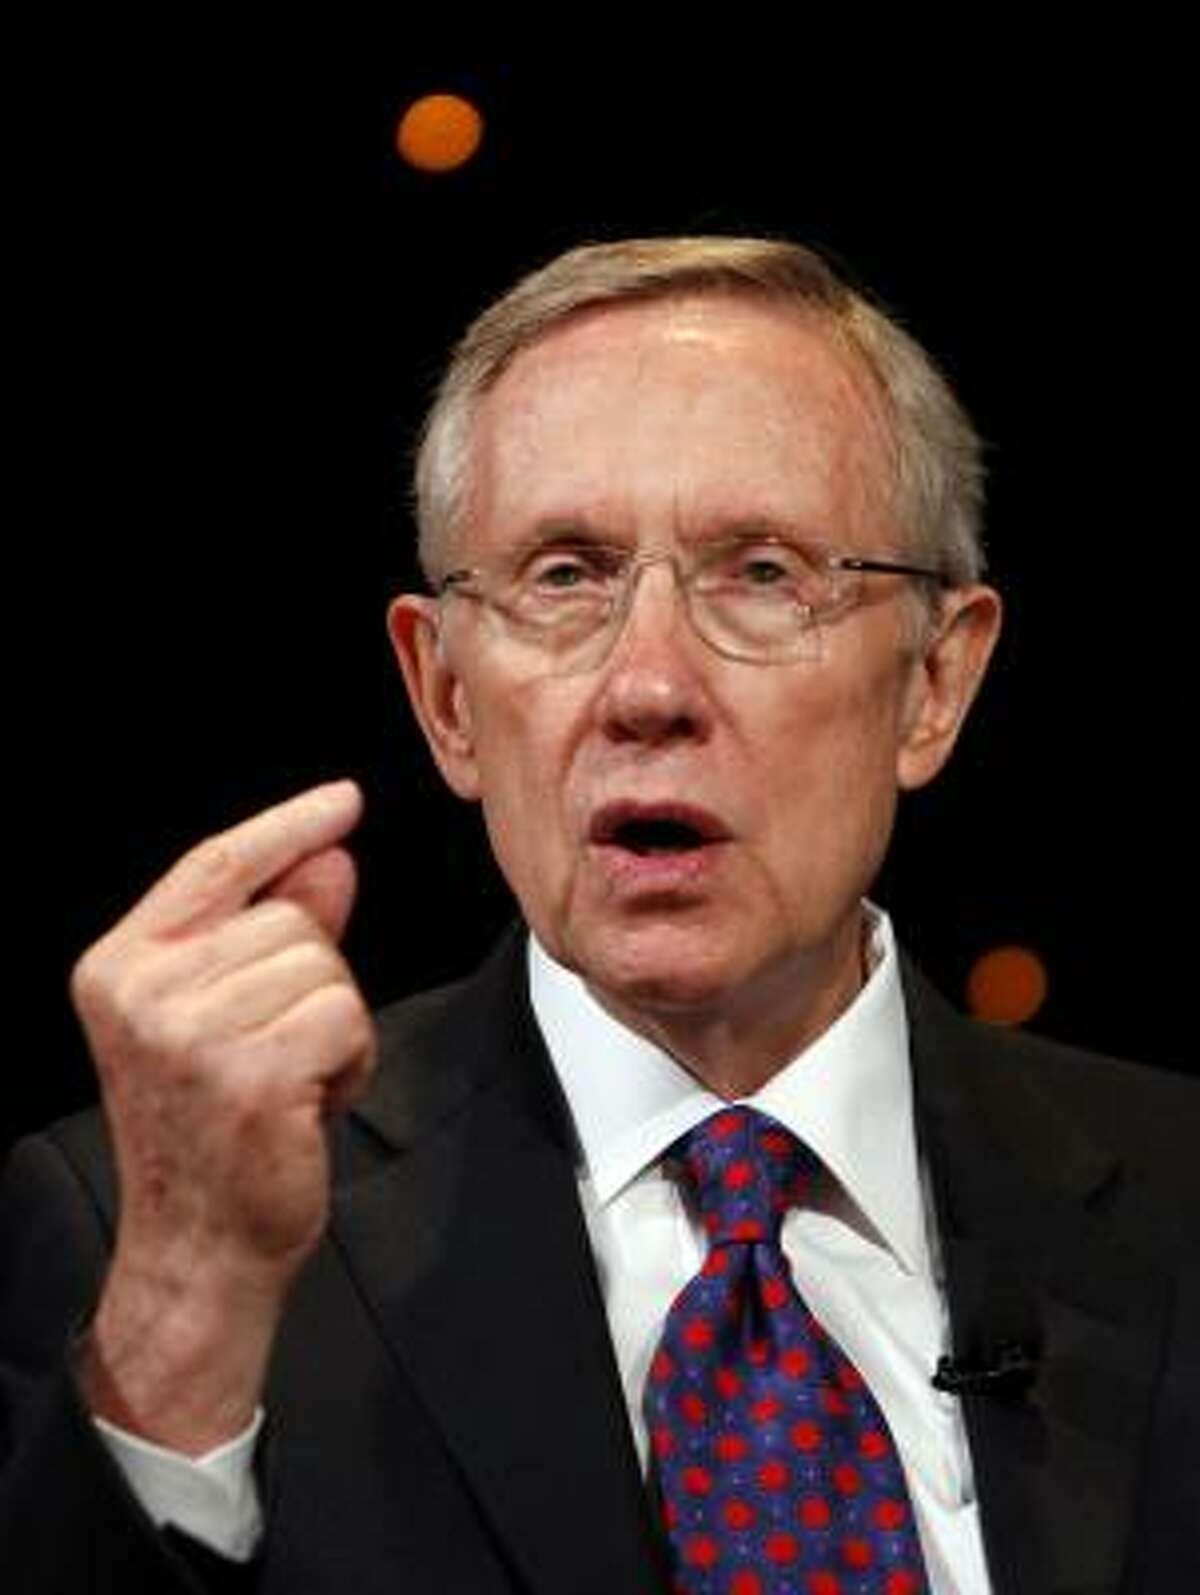 Sen. Harry Reid answers questions during the Netroots Nation convention at the Rio Hotel and Casino in Las Vegas on Saturday.